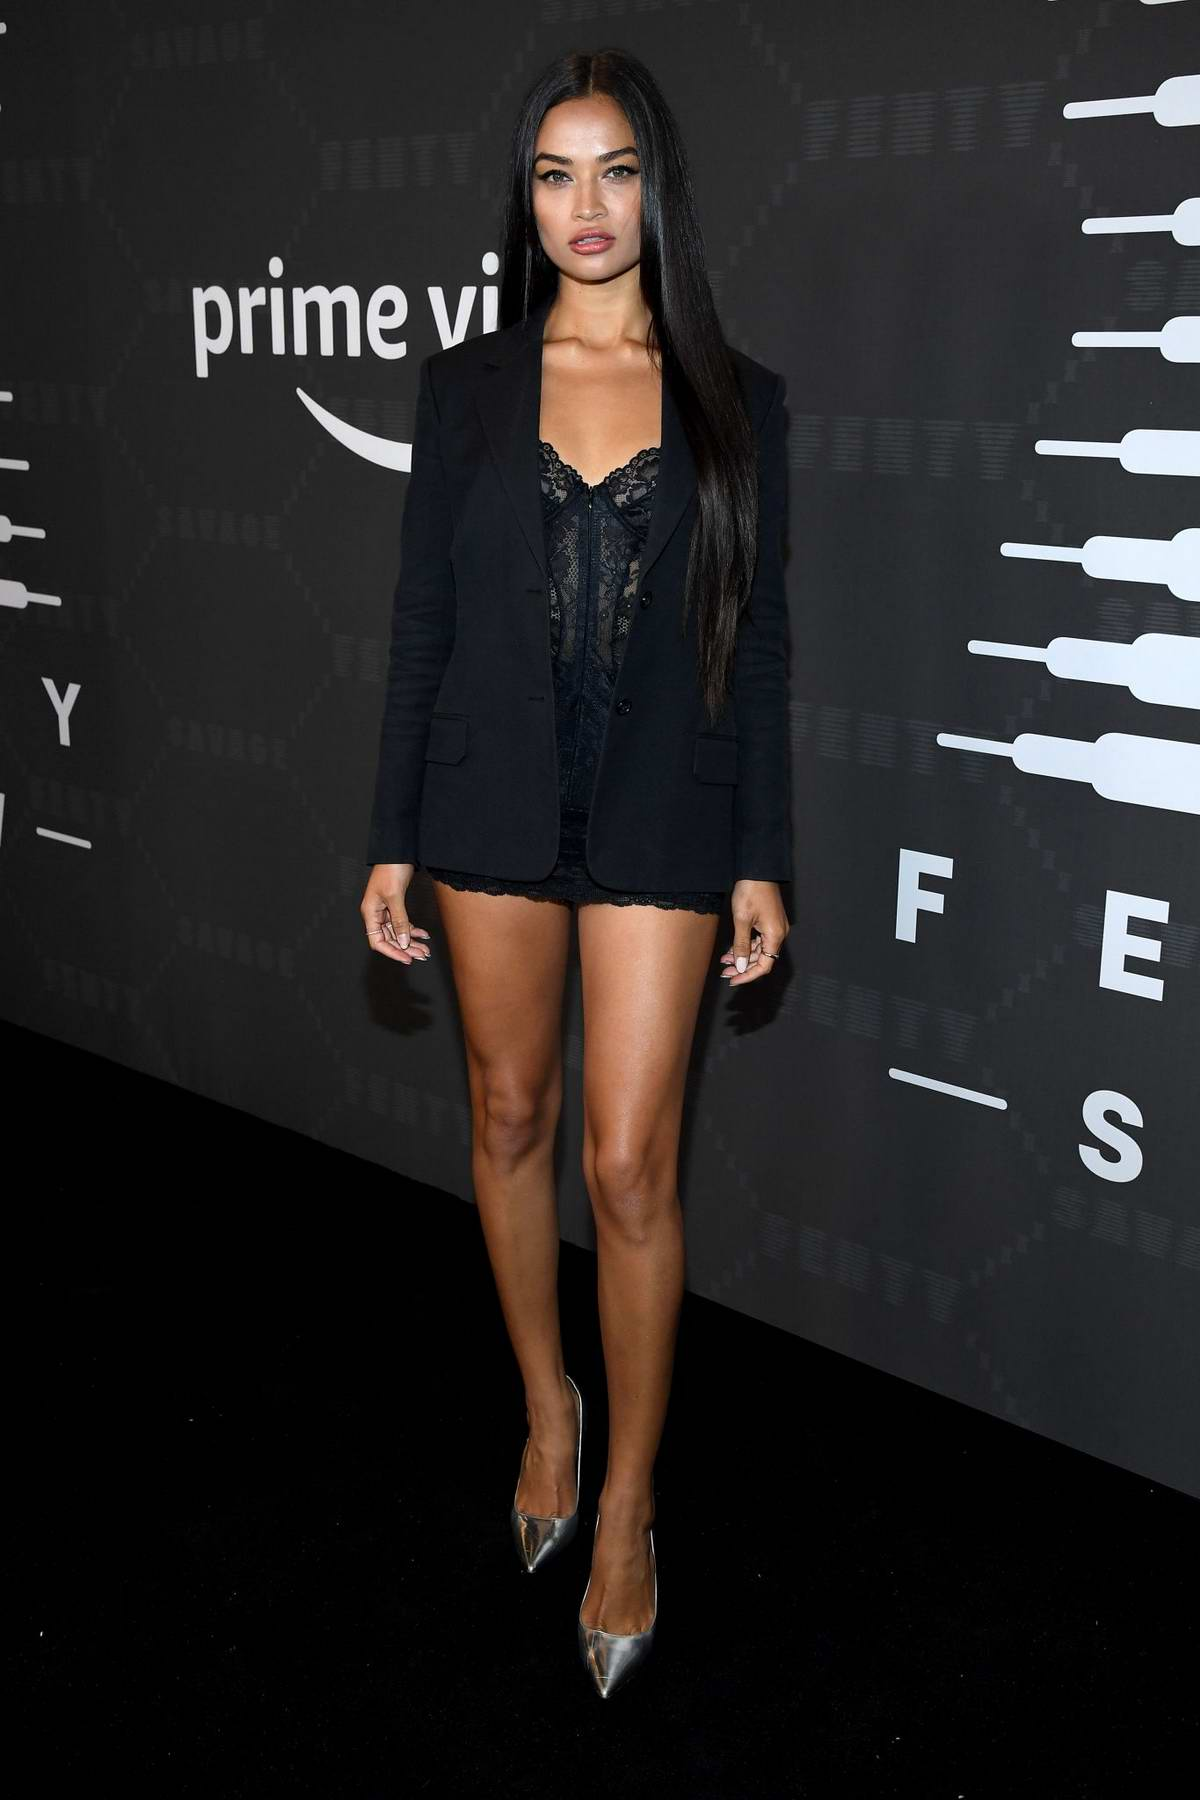 Shanina Shaik attends Savage X Fenty Show during New York Fashion Week at Barclays Center in Brooklyn, New York City